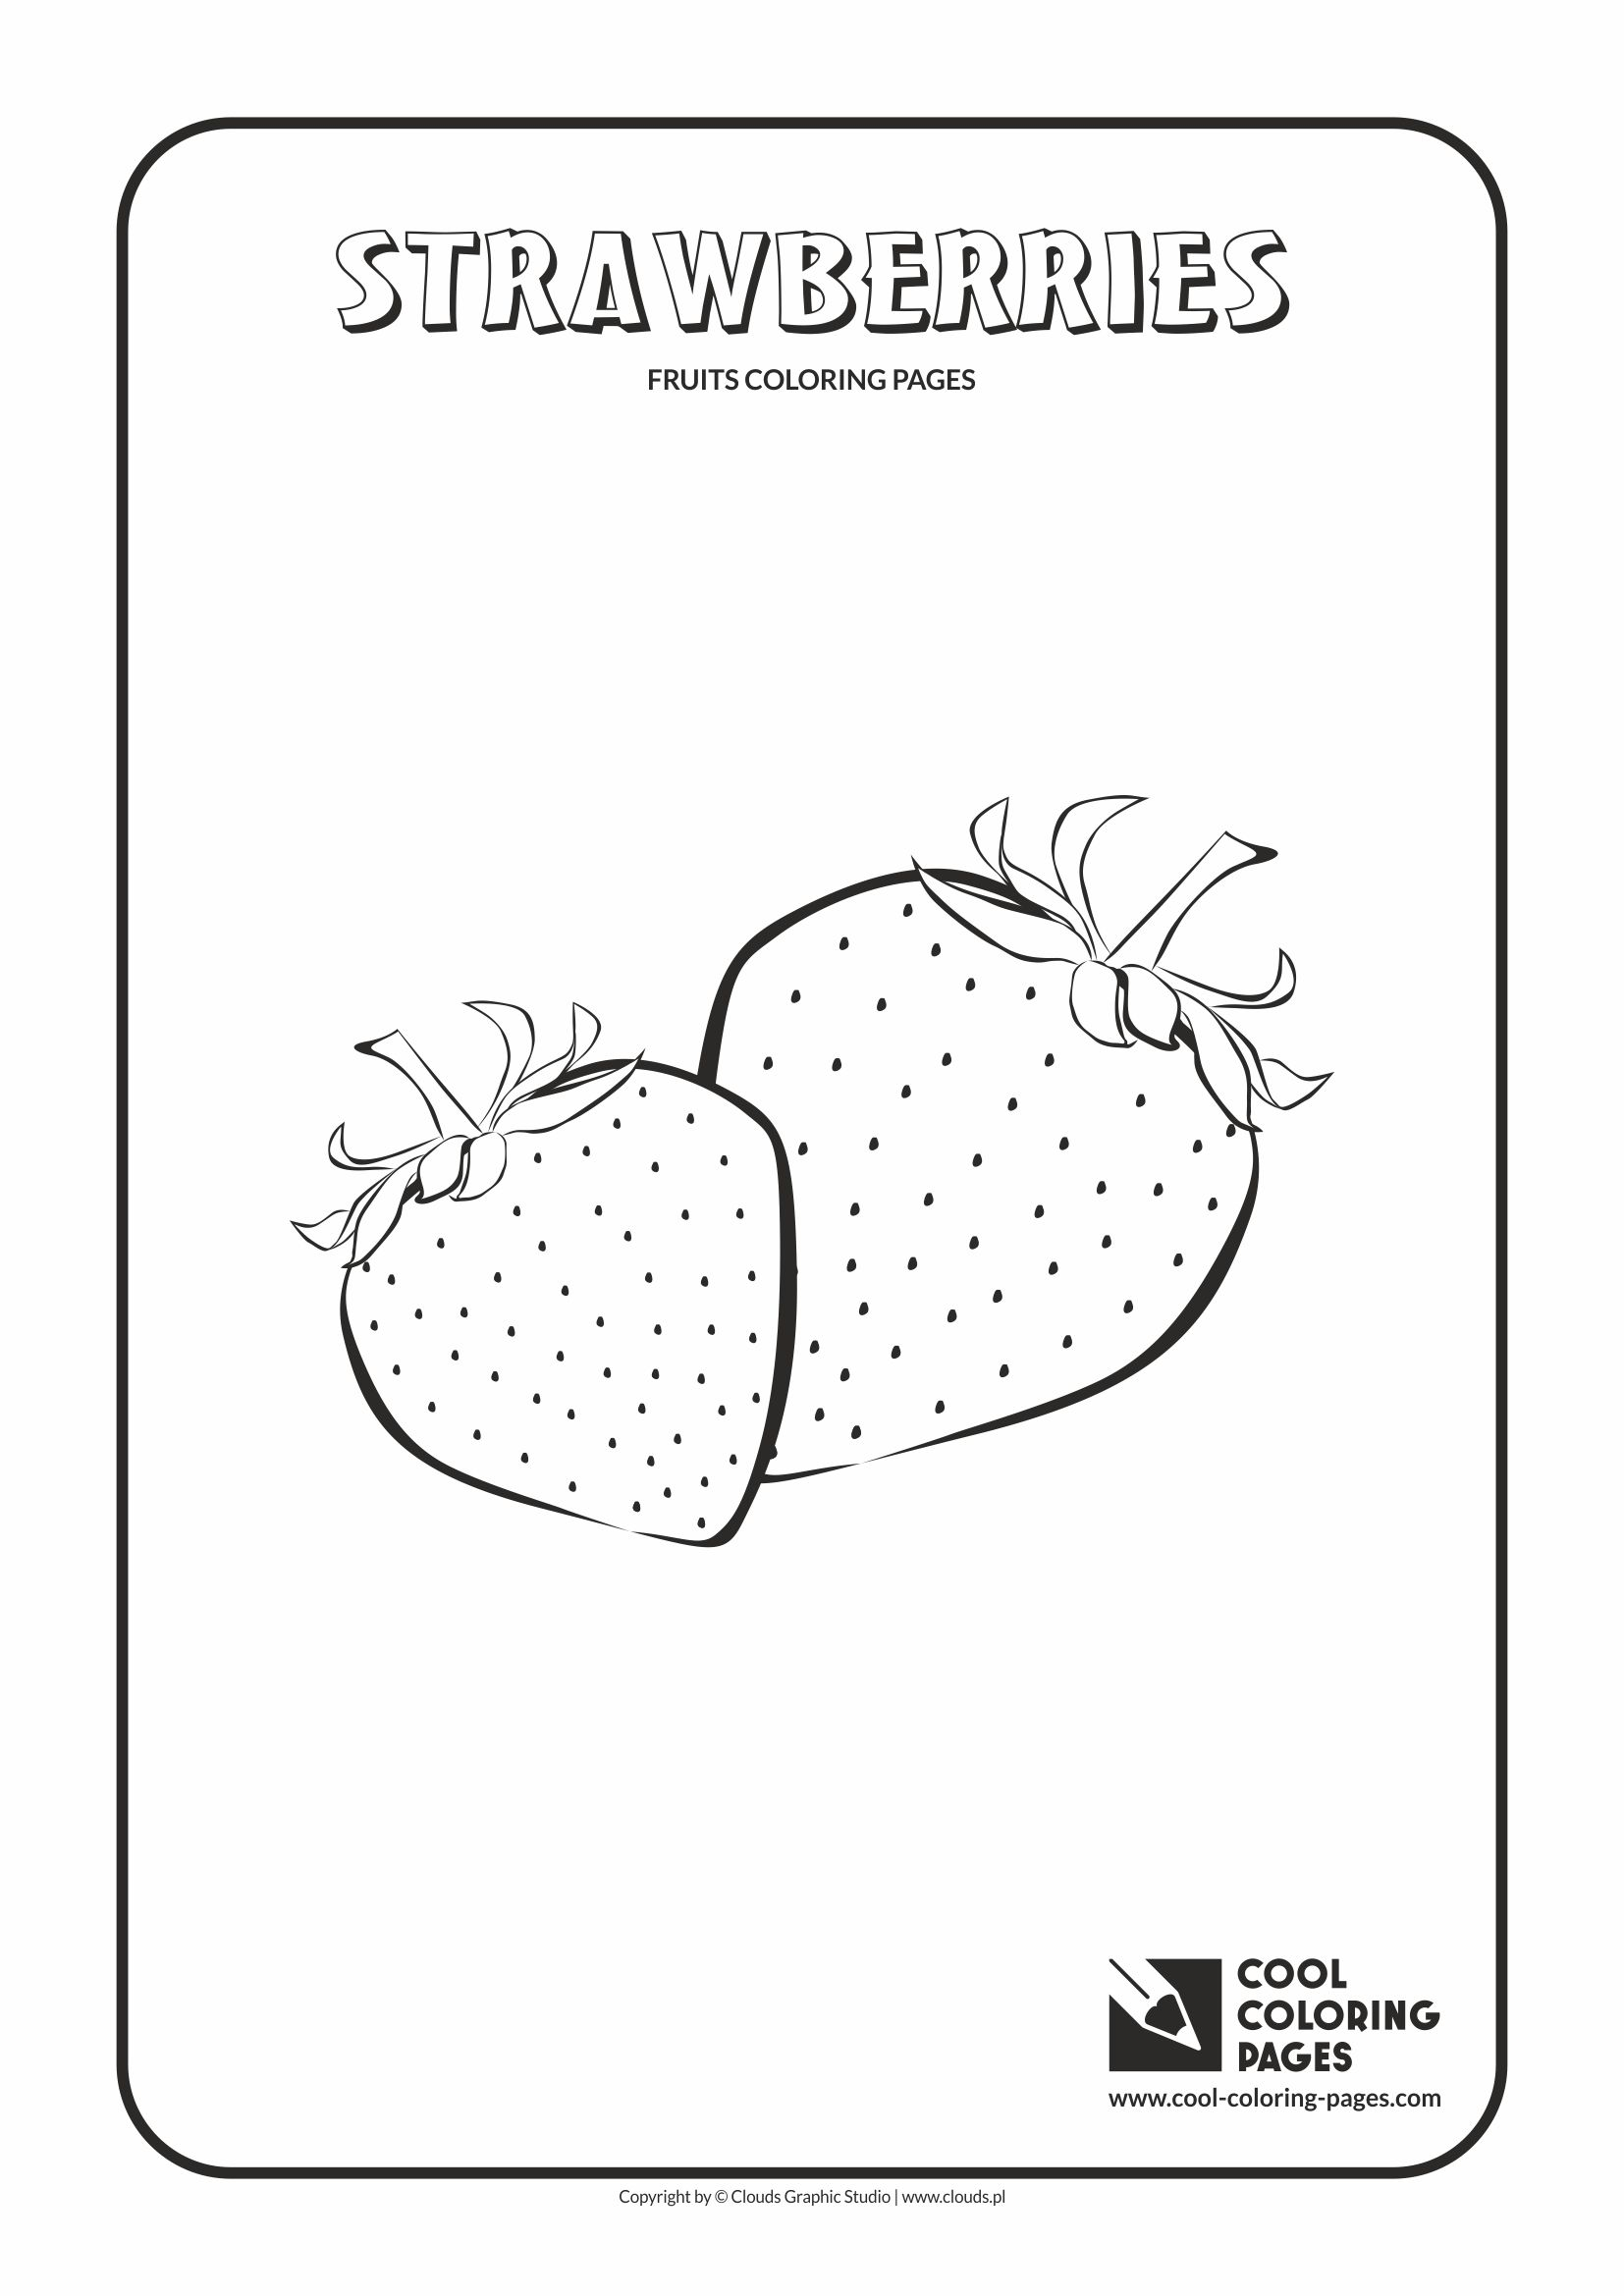 Cool Coloring Pages - Plants / Strawberries / Coloring page with strawberries